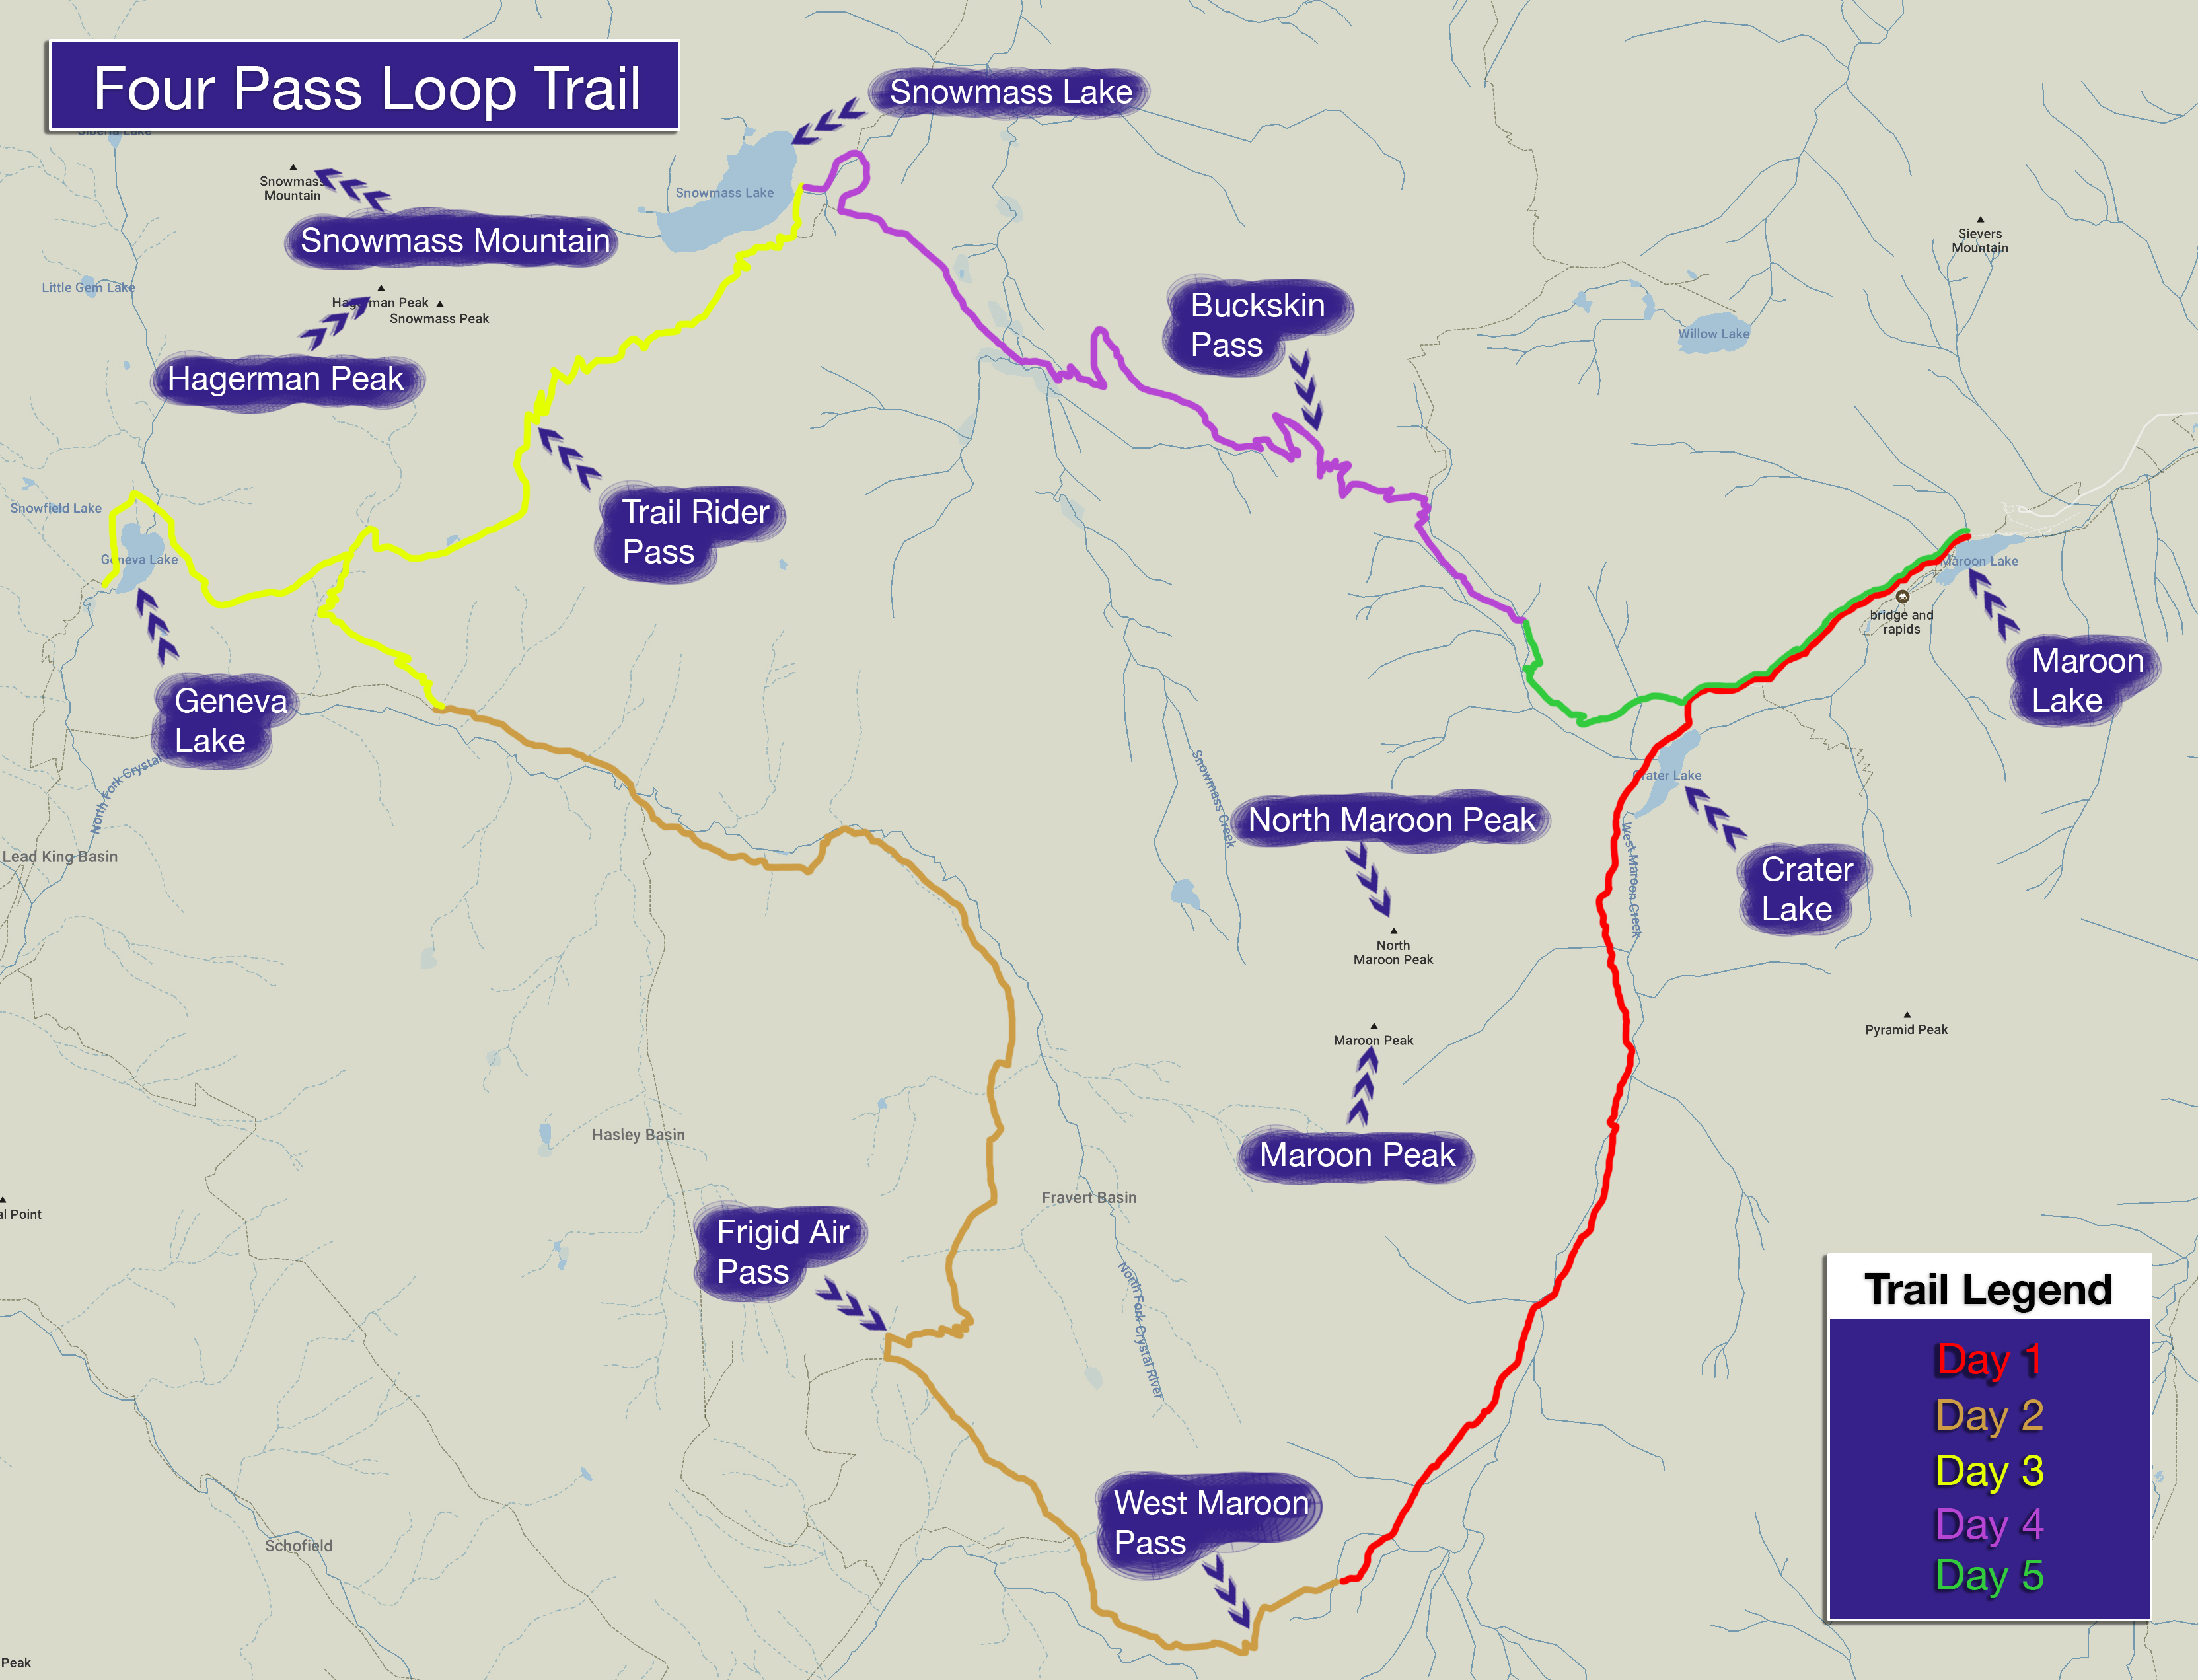 A hiking map for the Four Pass Loop.